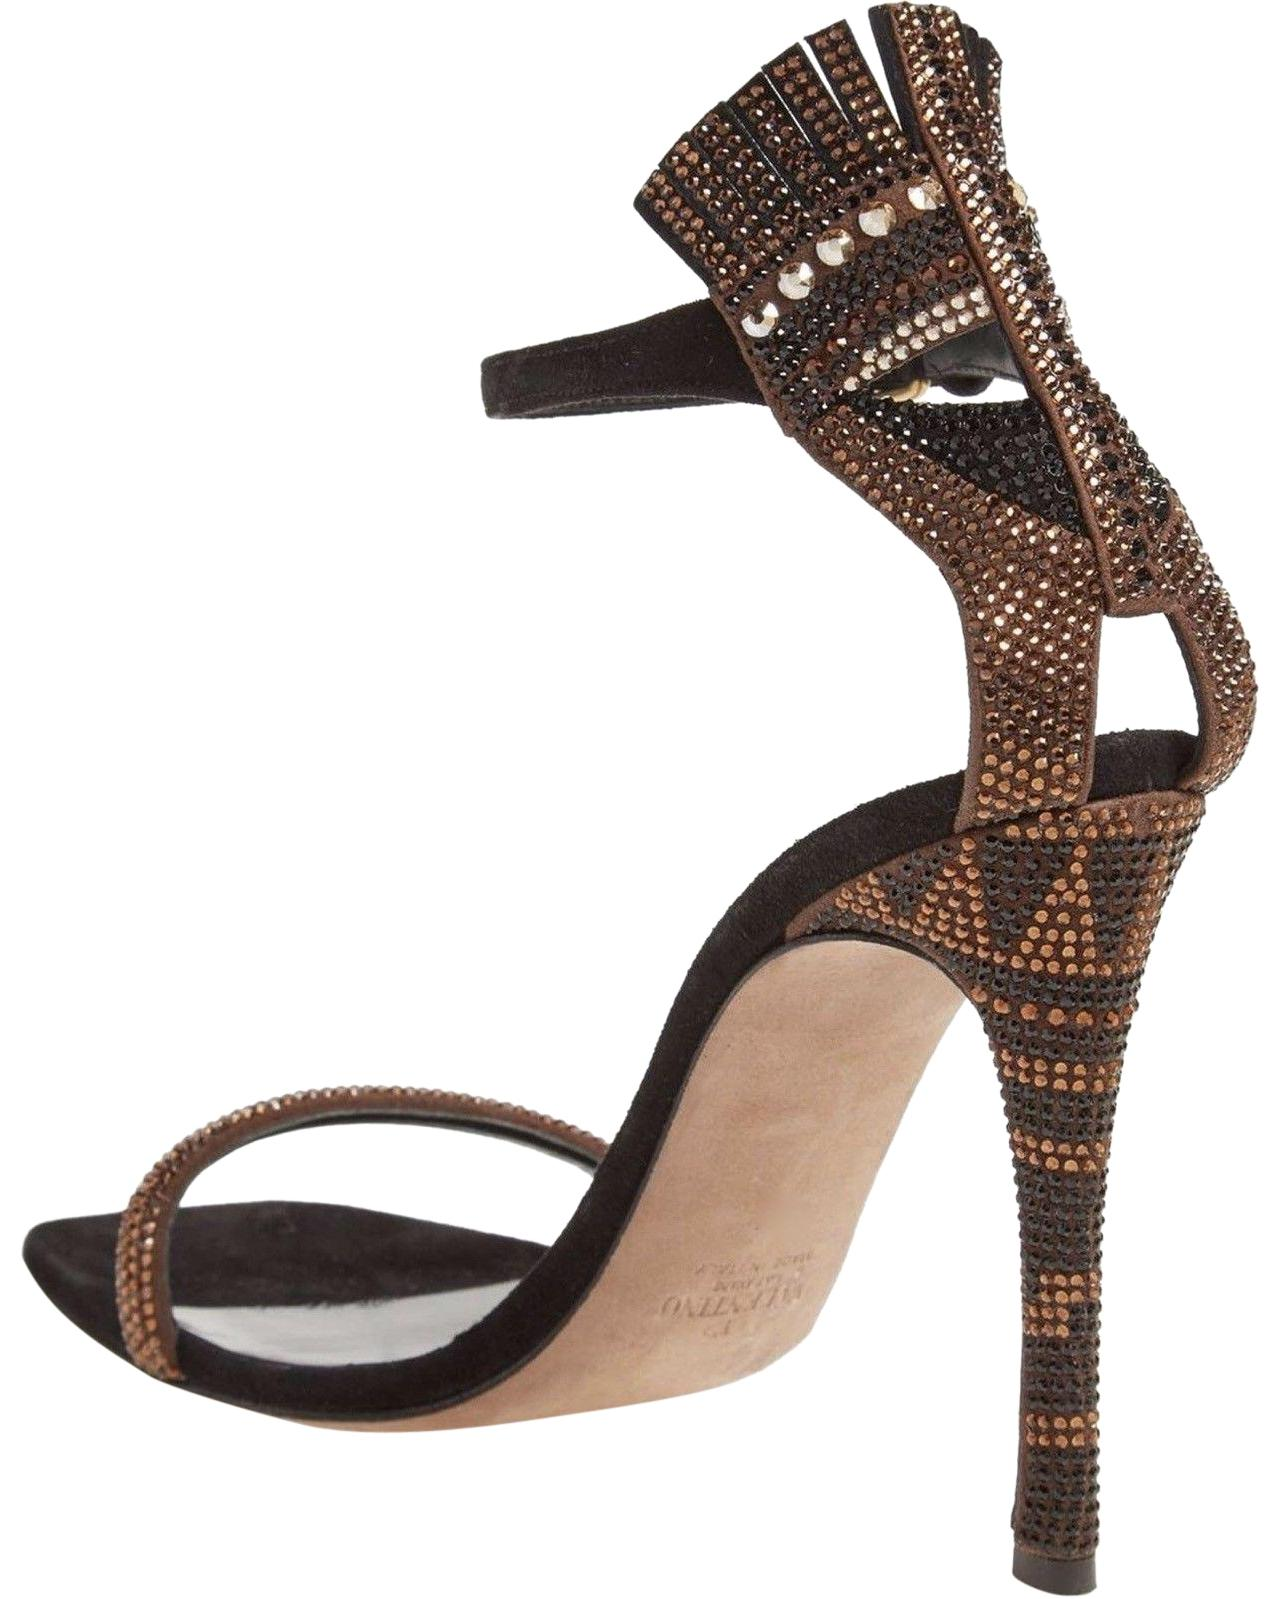 Valentino Blach Africa Glam Mask Sandals Size EU 40 (Approx. US 10) Regular (M, B)